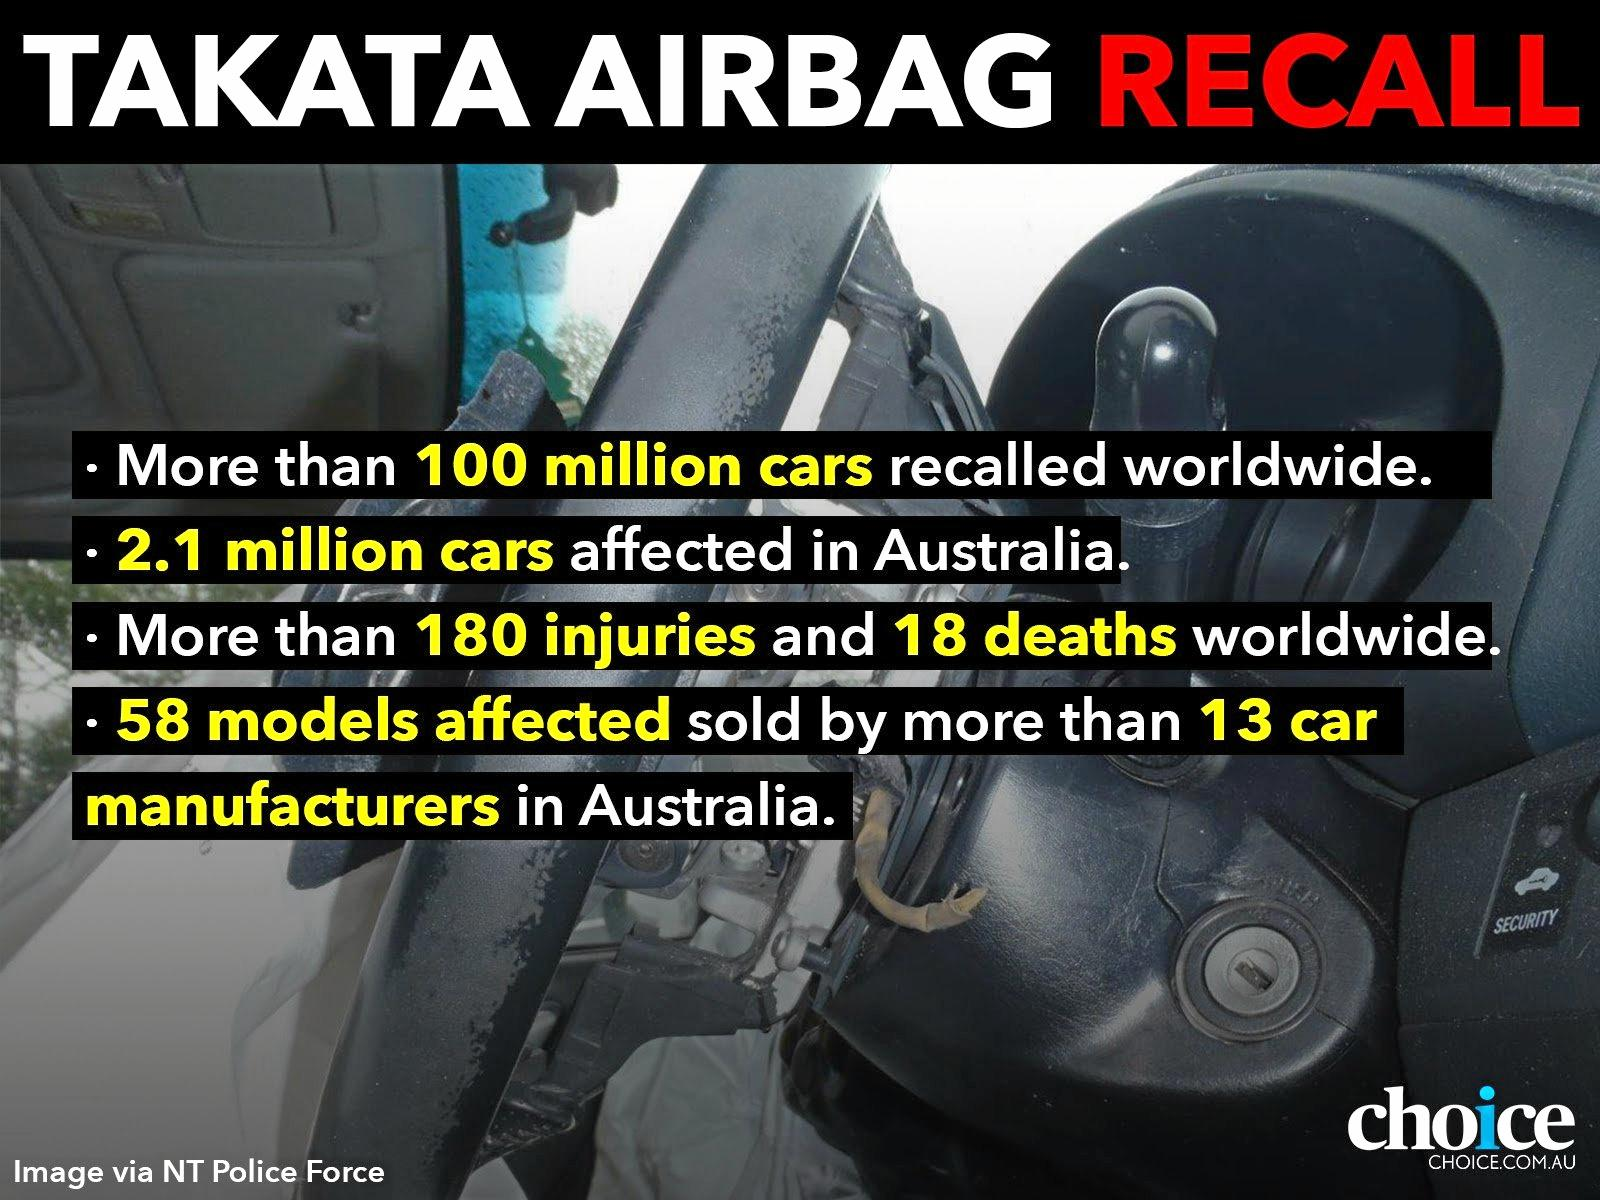 The ACCC is now investigating the Takata airbag recall.